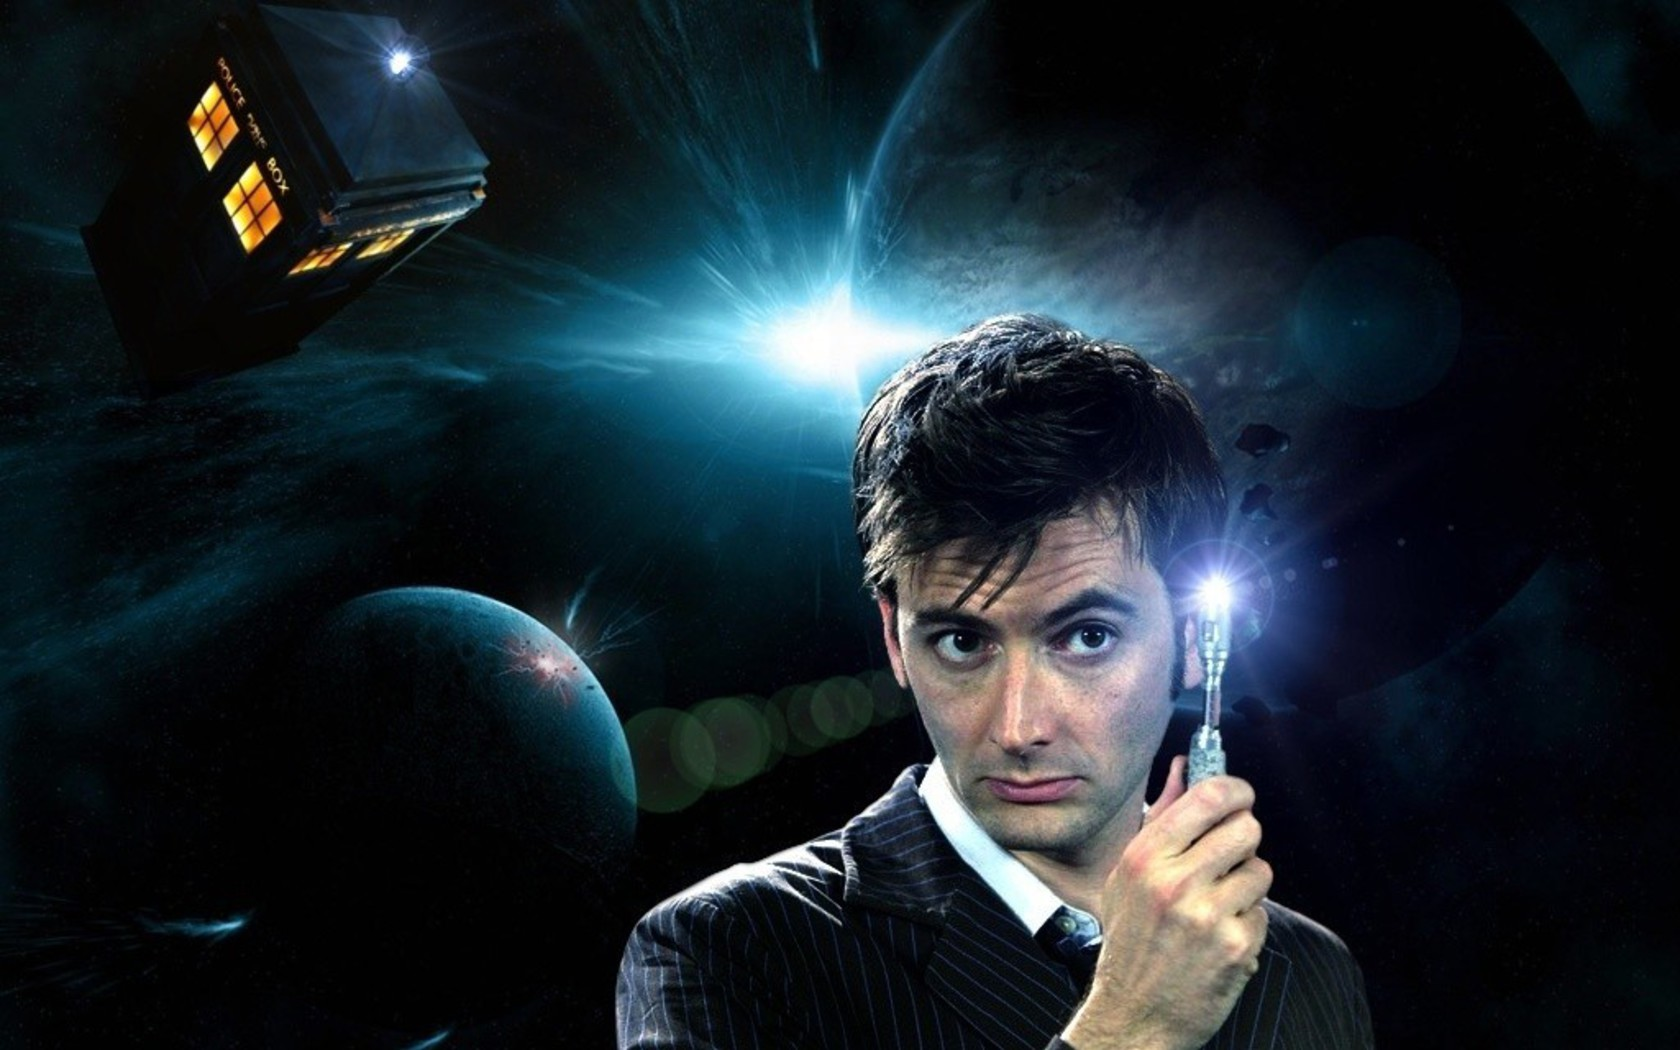 Tardis david tennant doctor who tenth sonic screwdriver wallpaper ...